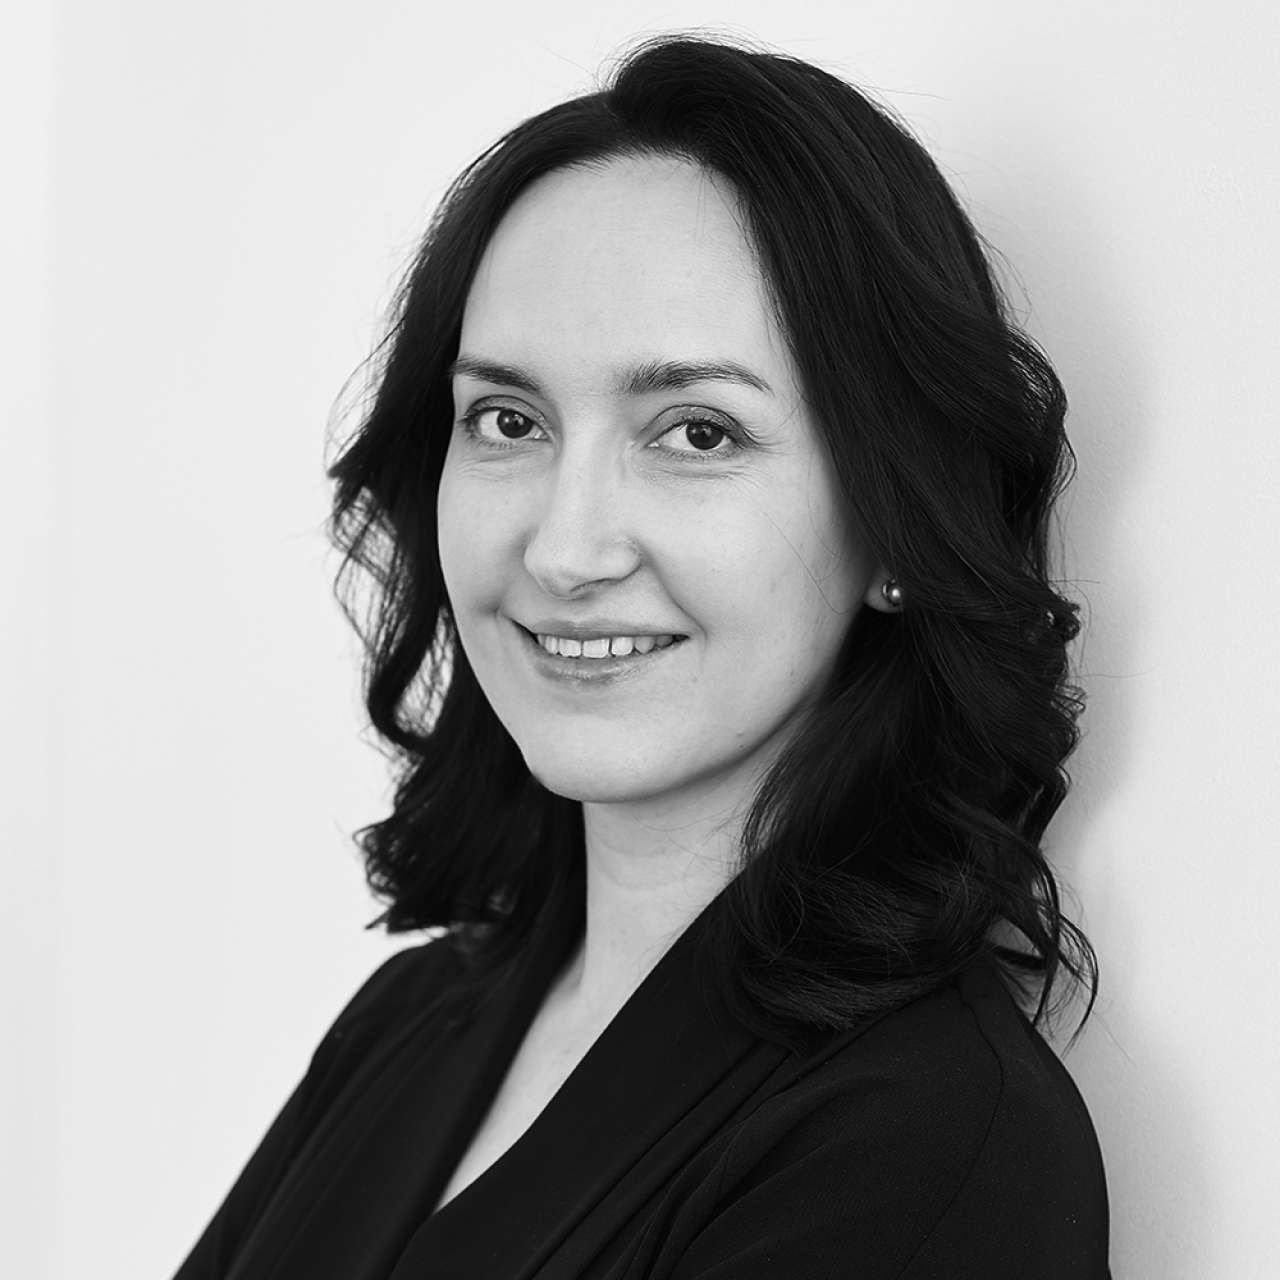 Gillespies appoints new General Director in Moscow office